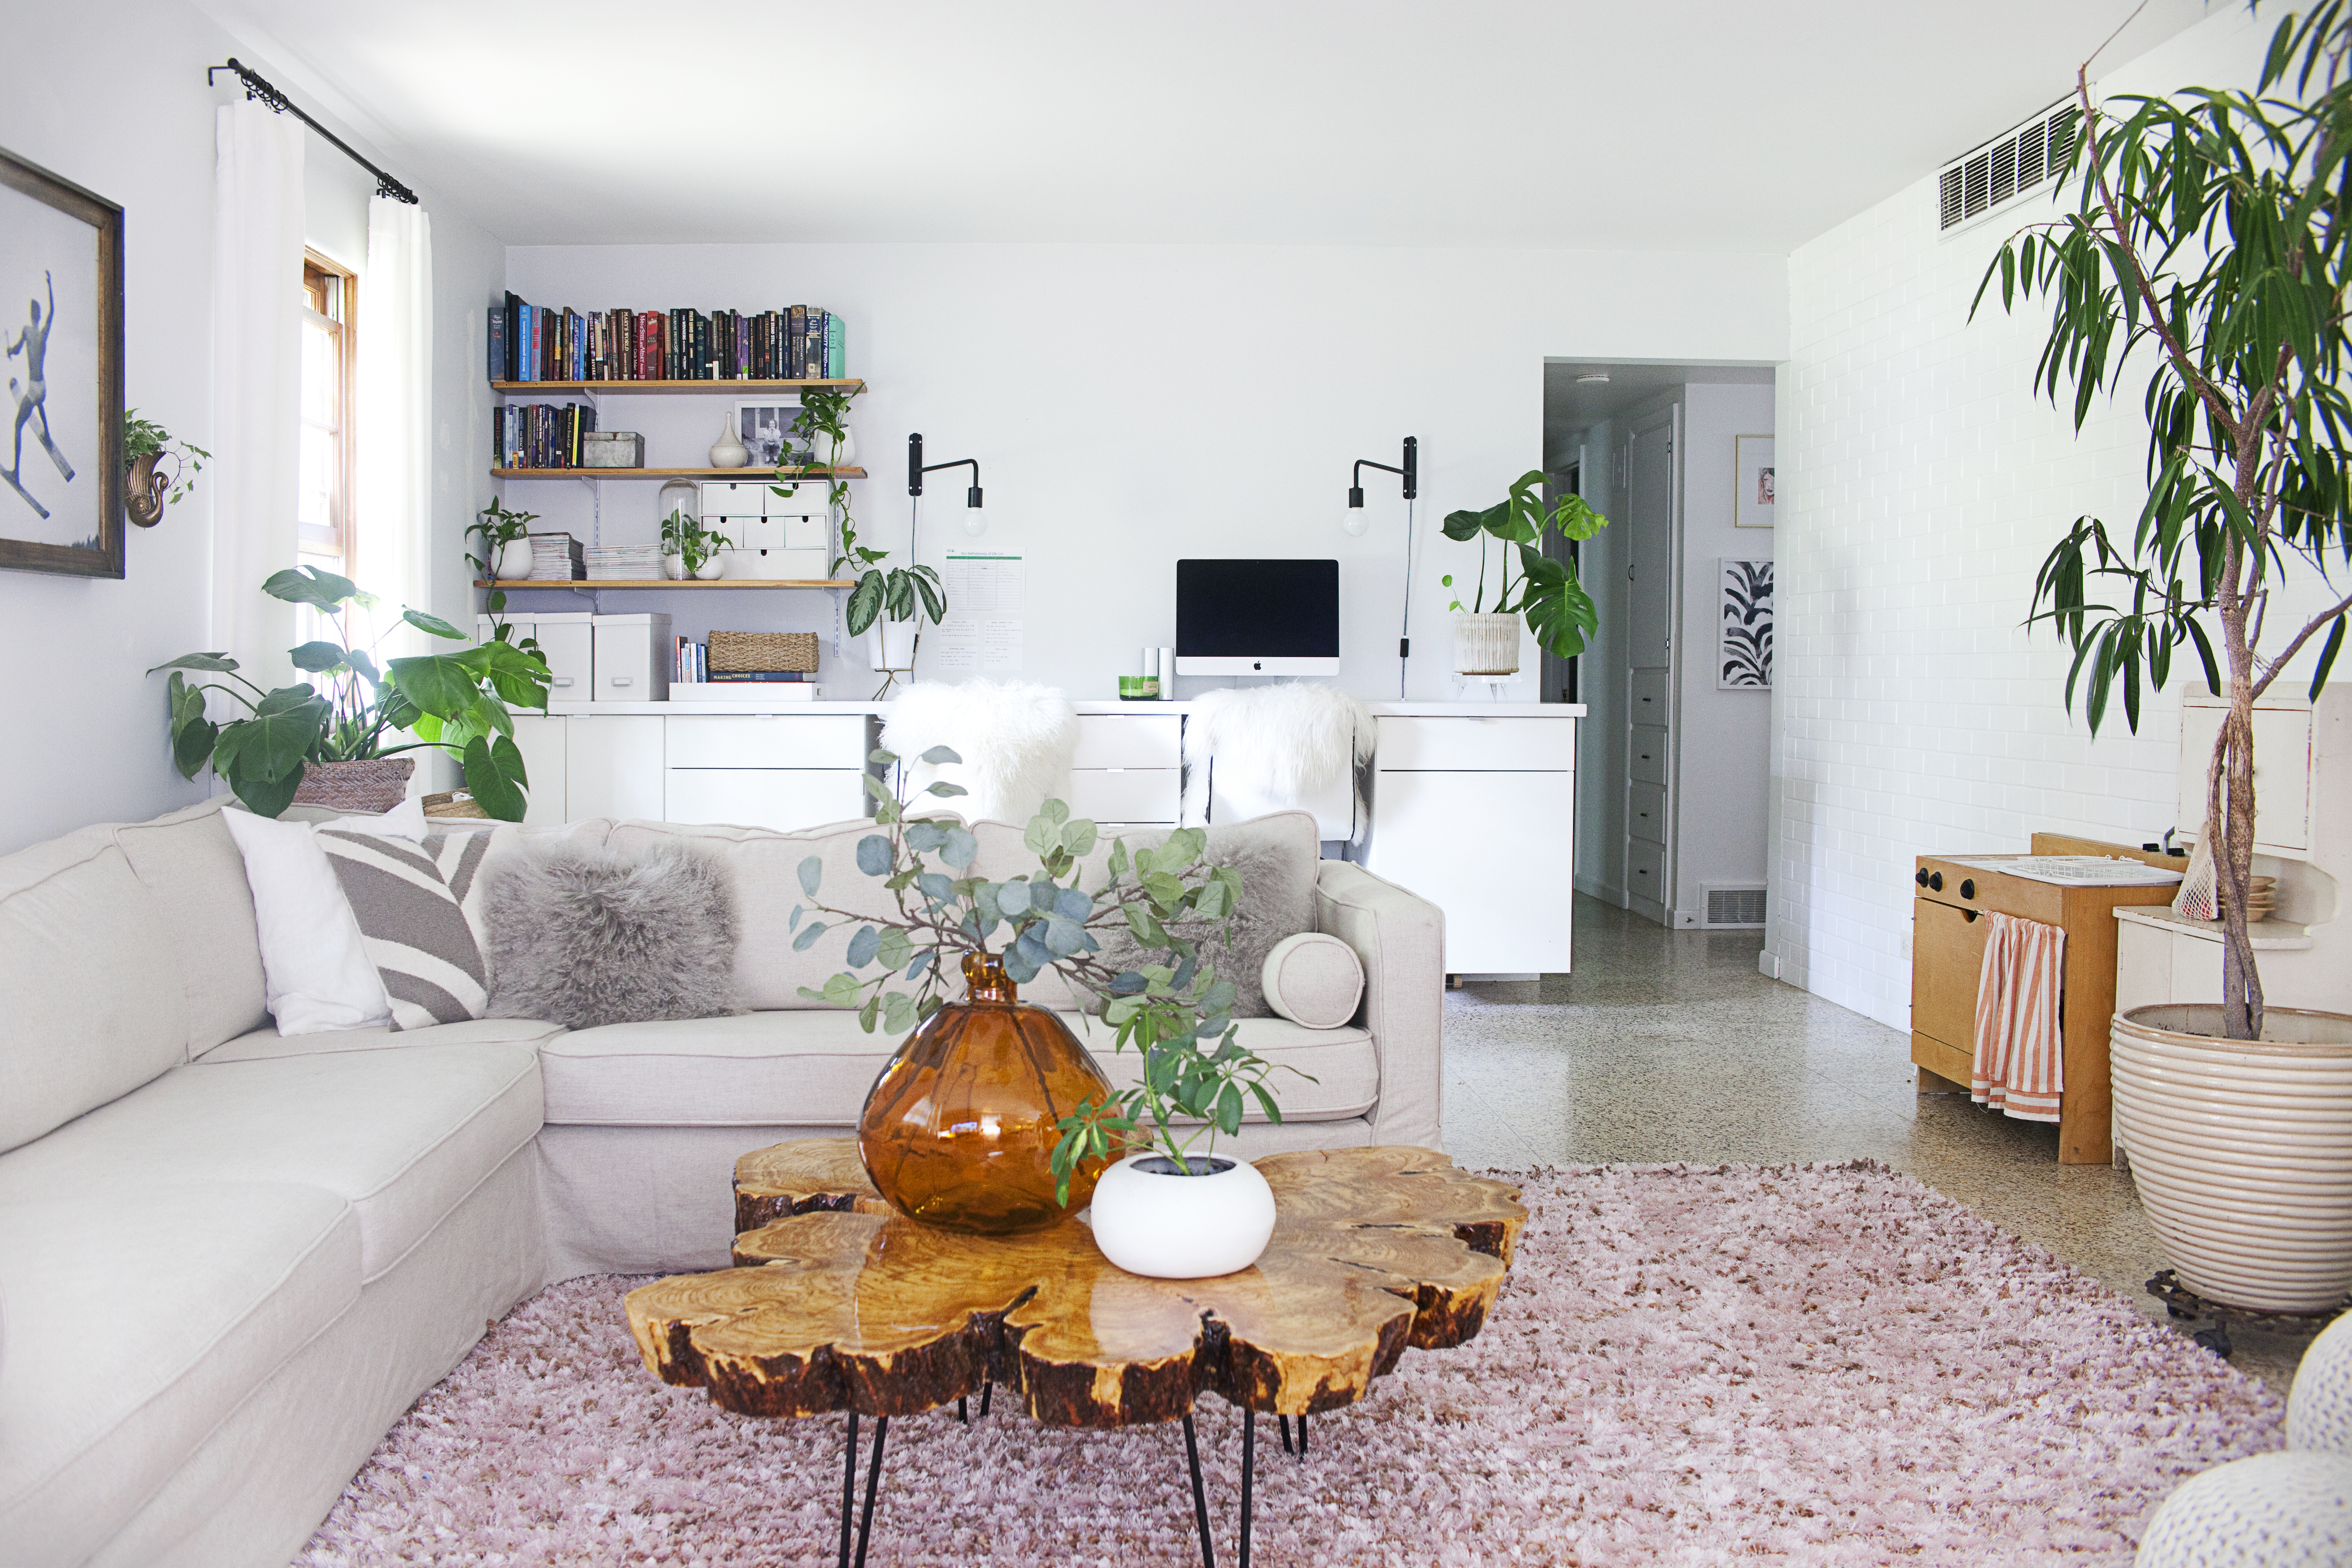 Living room decorated with plants Inspiration Ideas